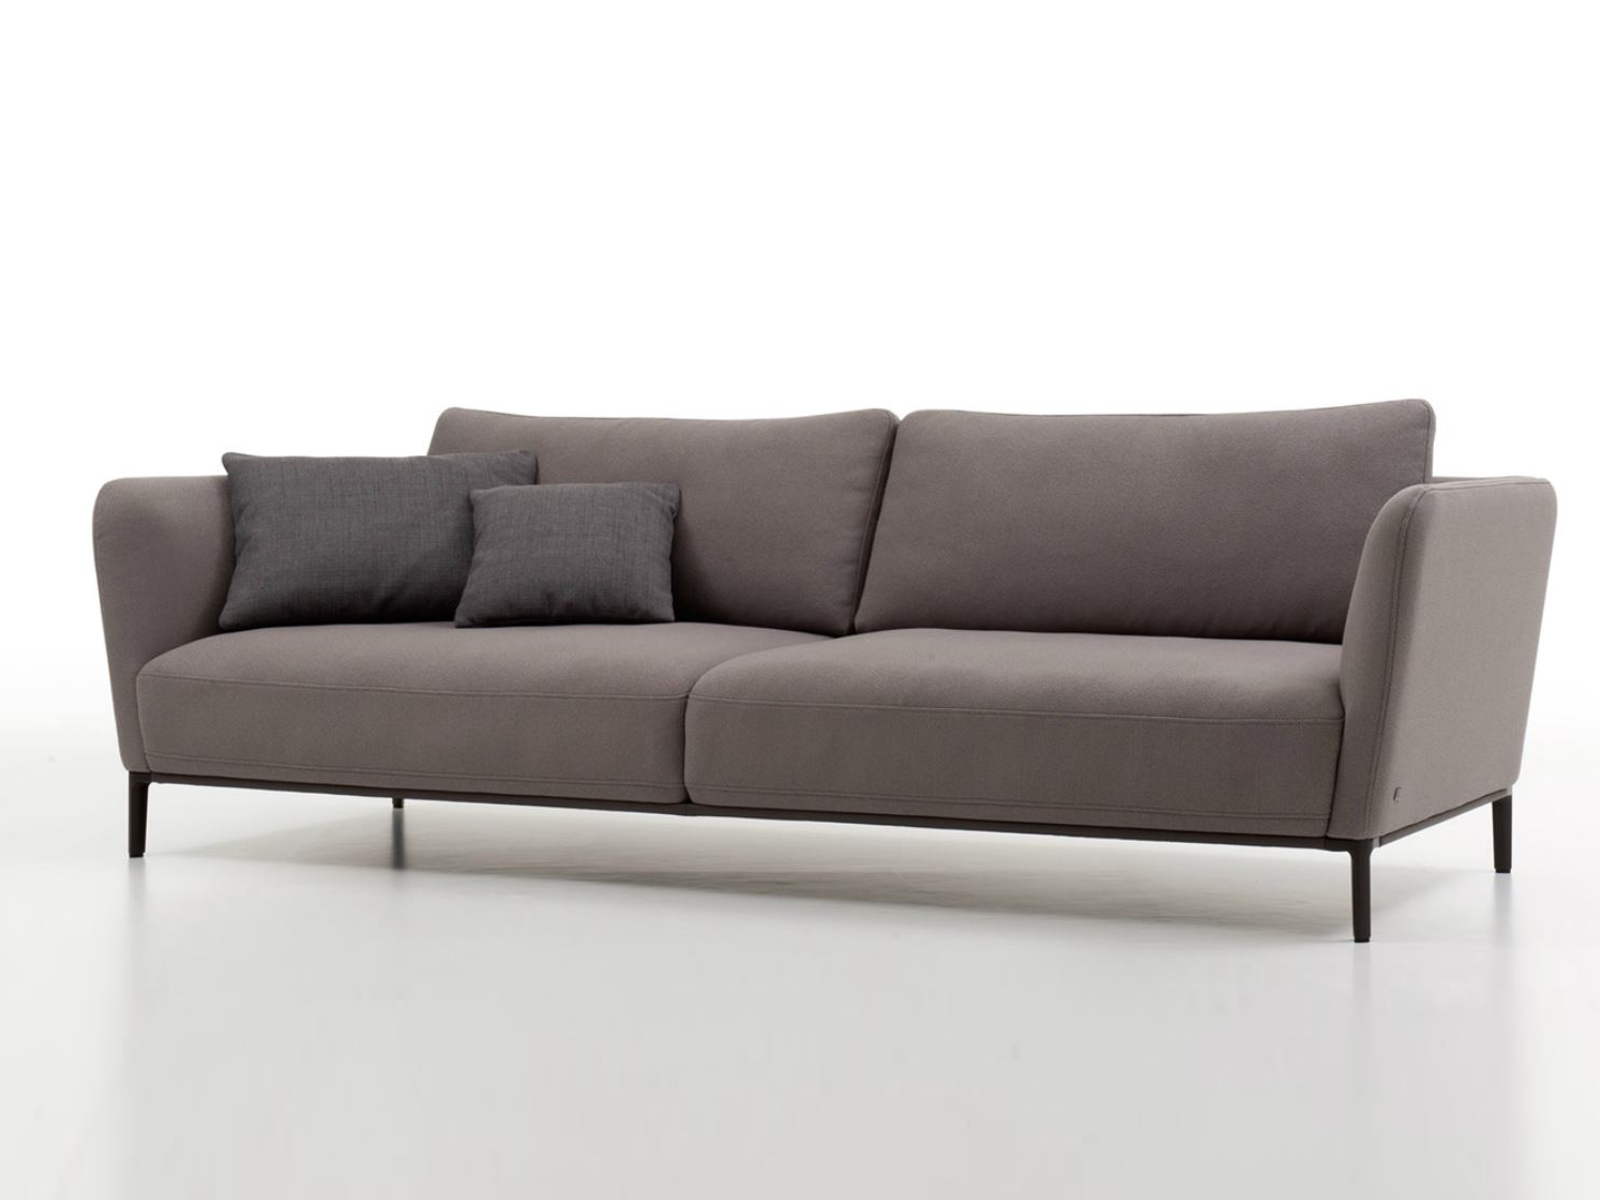 Amazing Rolf Benz Sofa Price Range: Elegant Grey Color Modern Style Rolf Benz Sofa Price Design